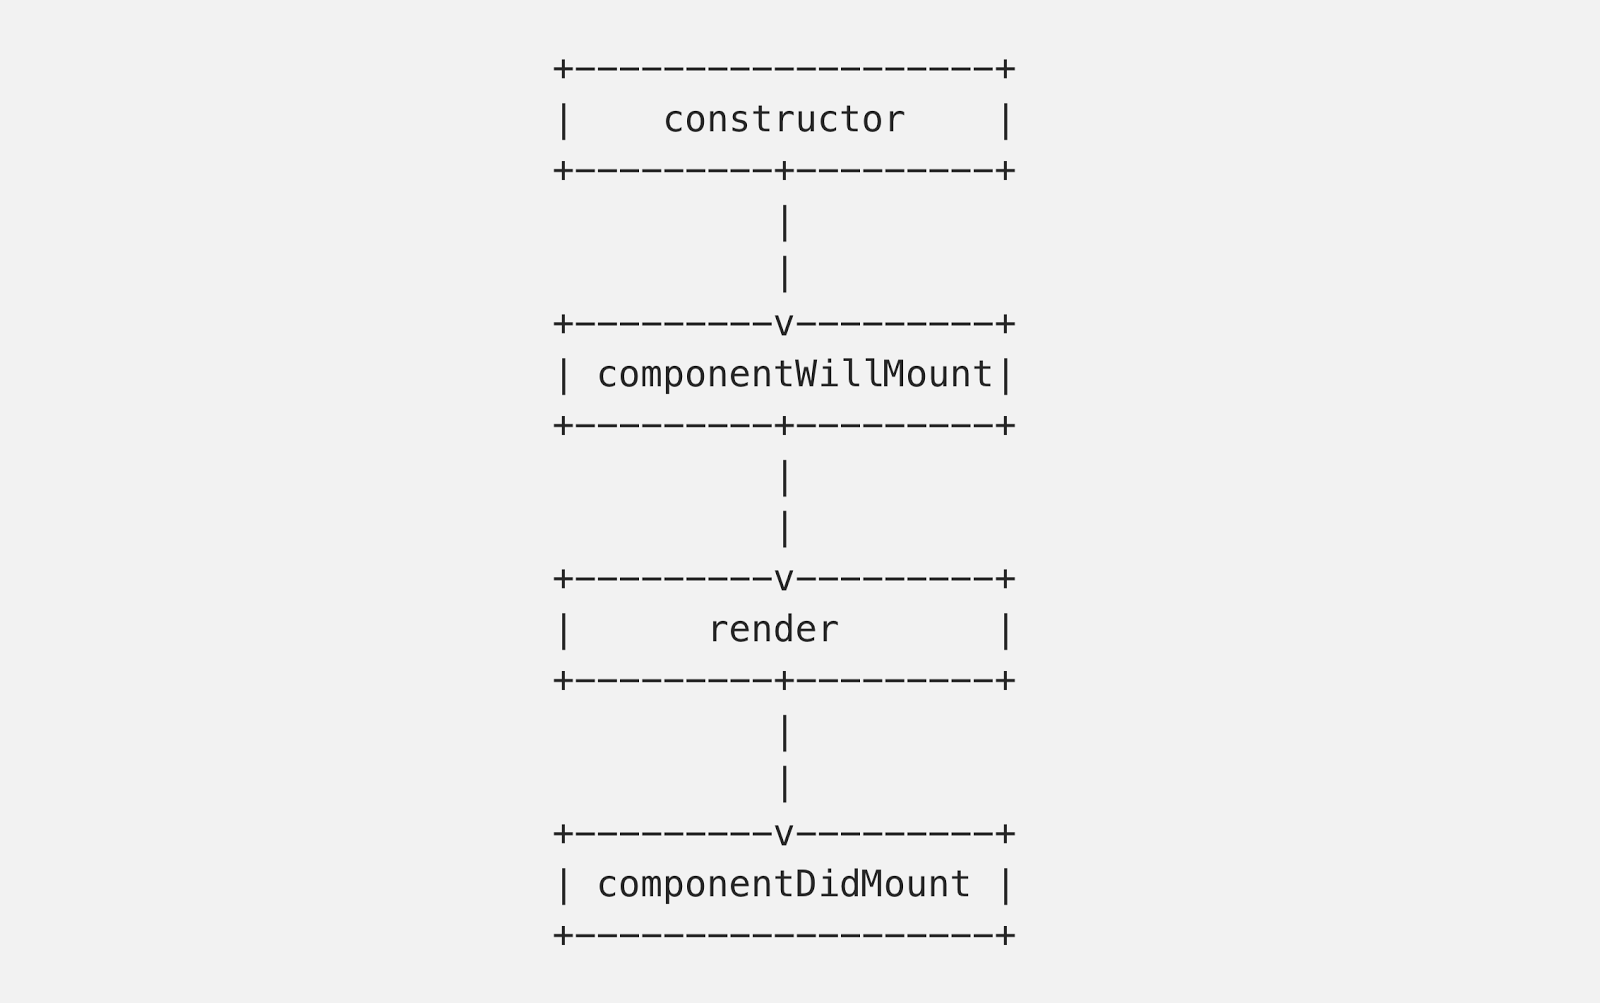 Mounting: an instance of the component is being created and inserted into the DOM.